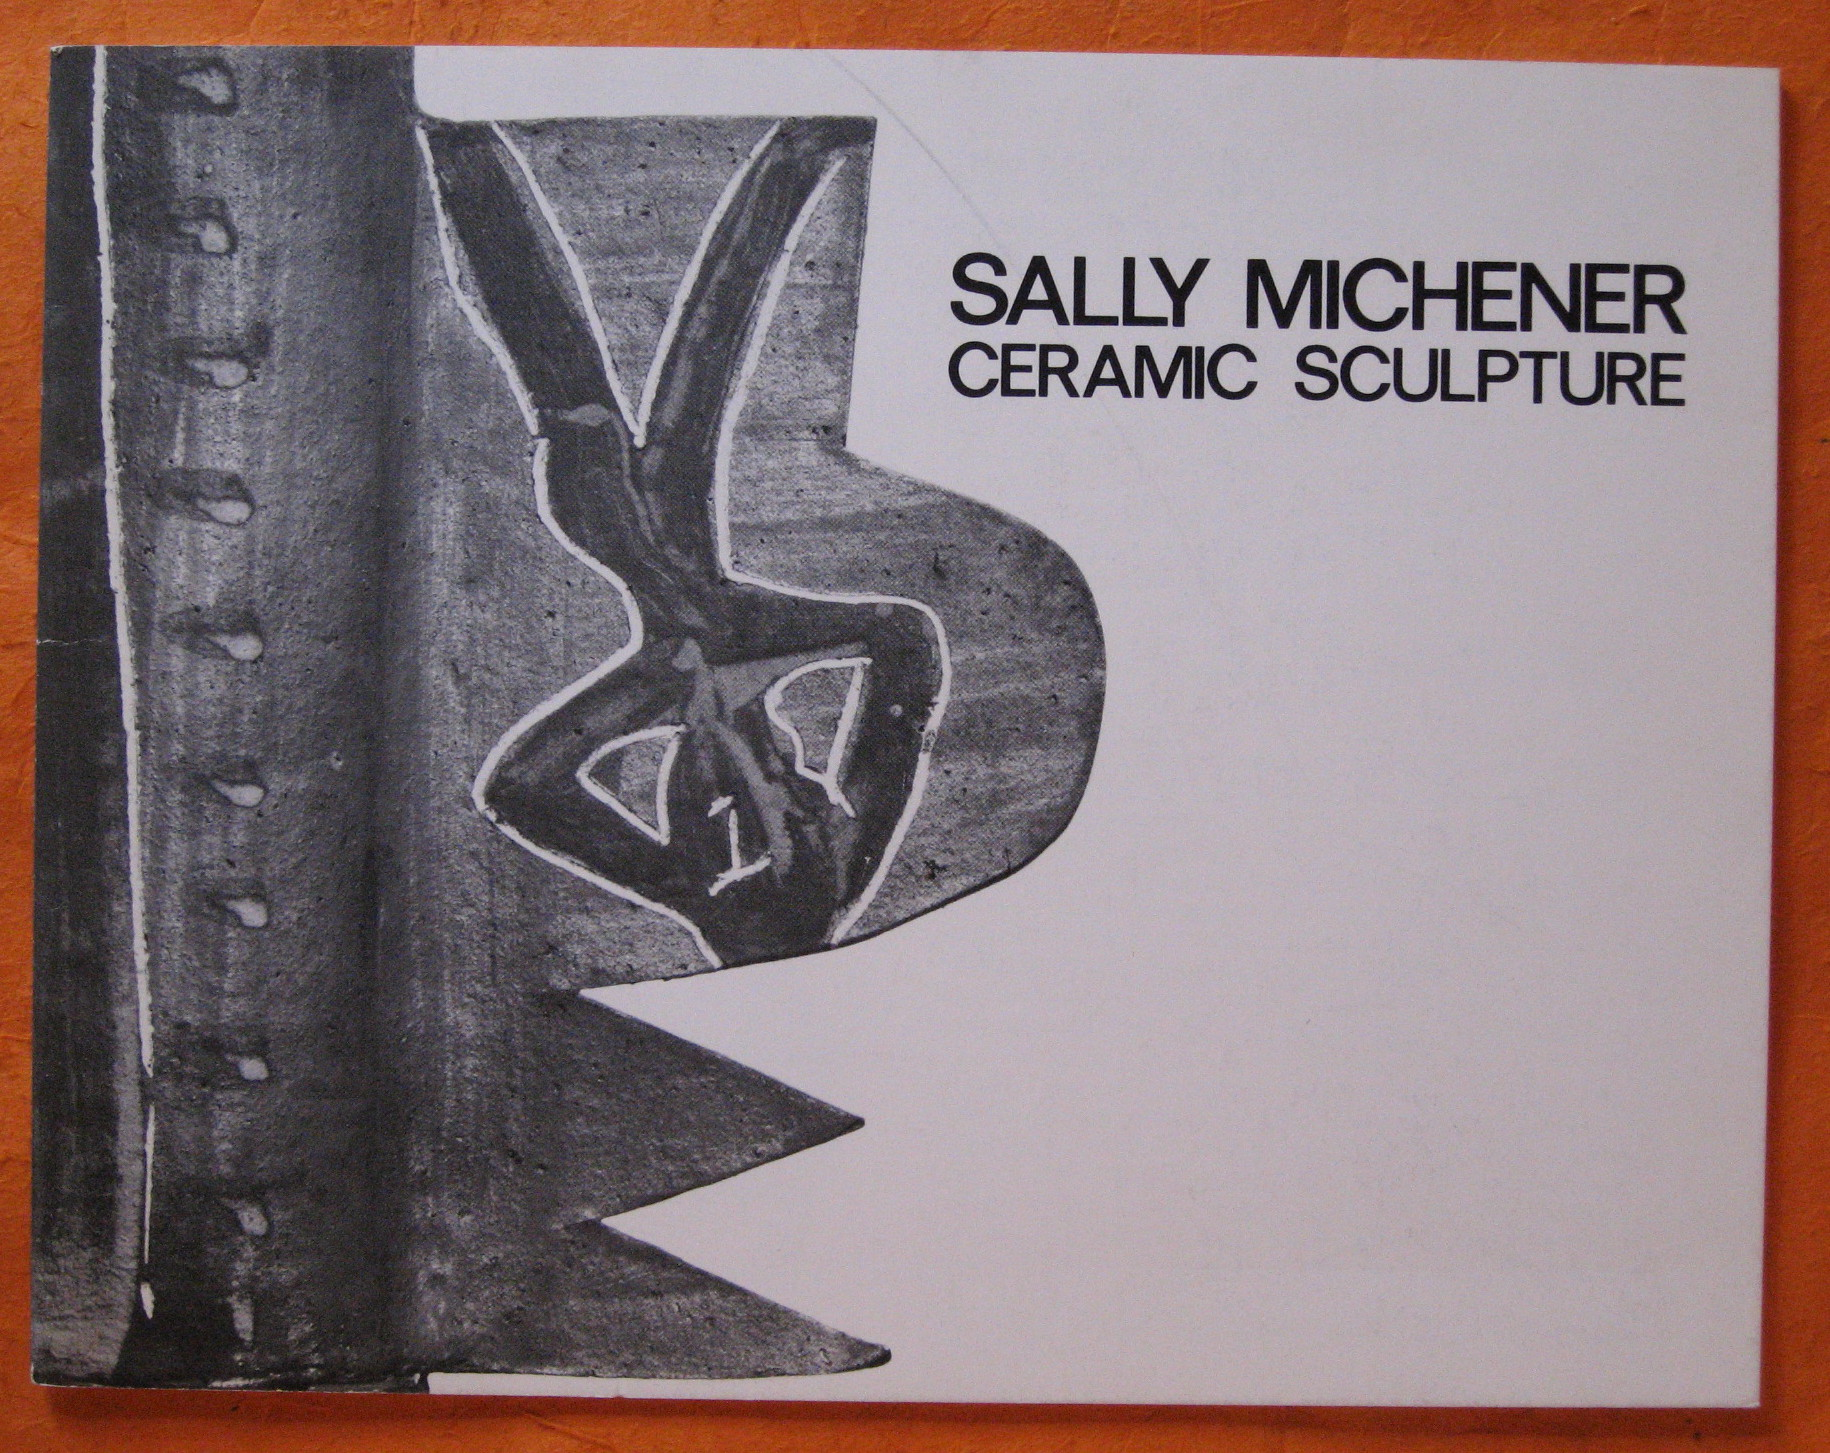 Sally Michener:  Ceramic Sculpture, Michener, Sally